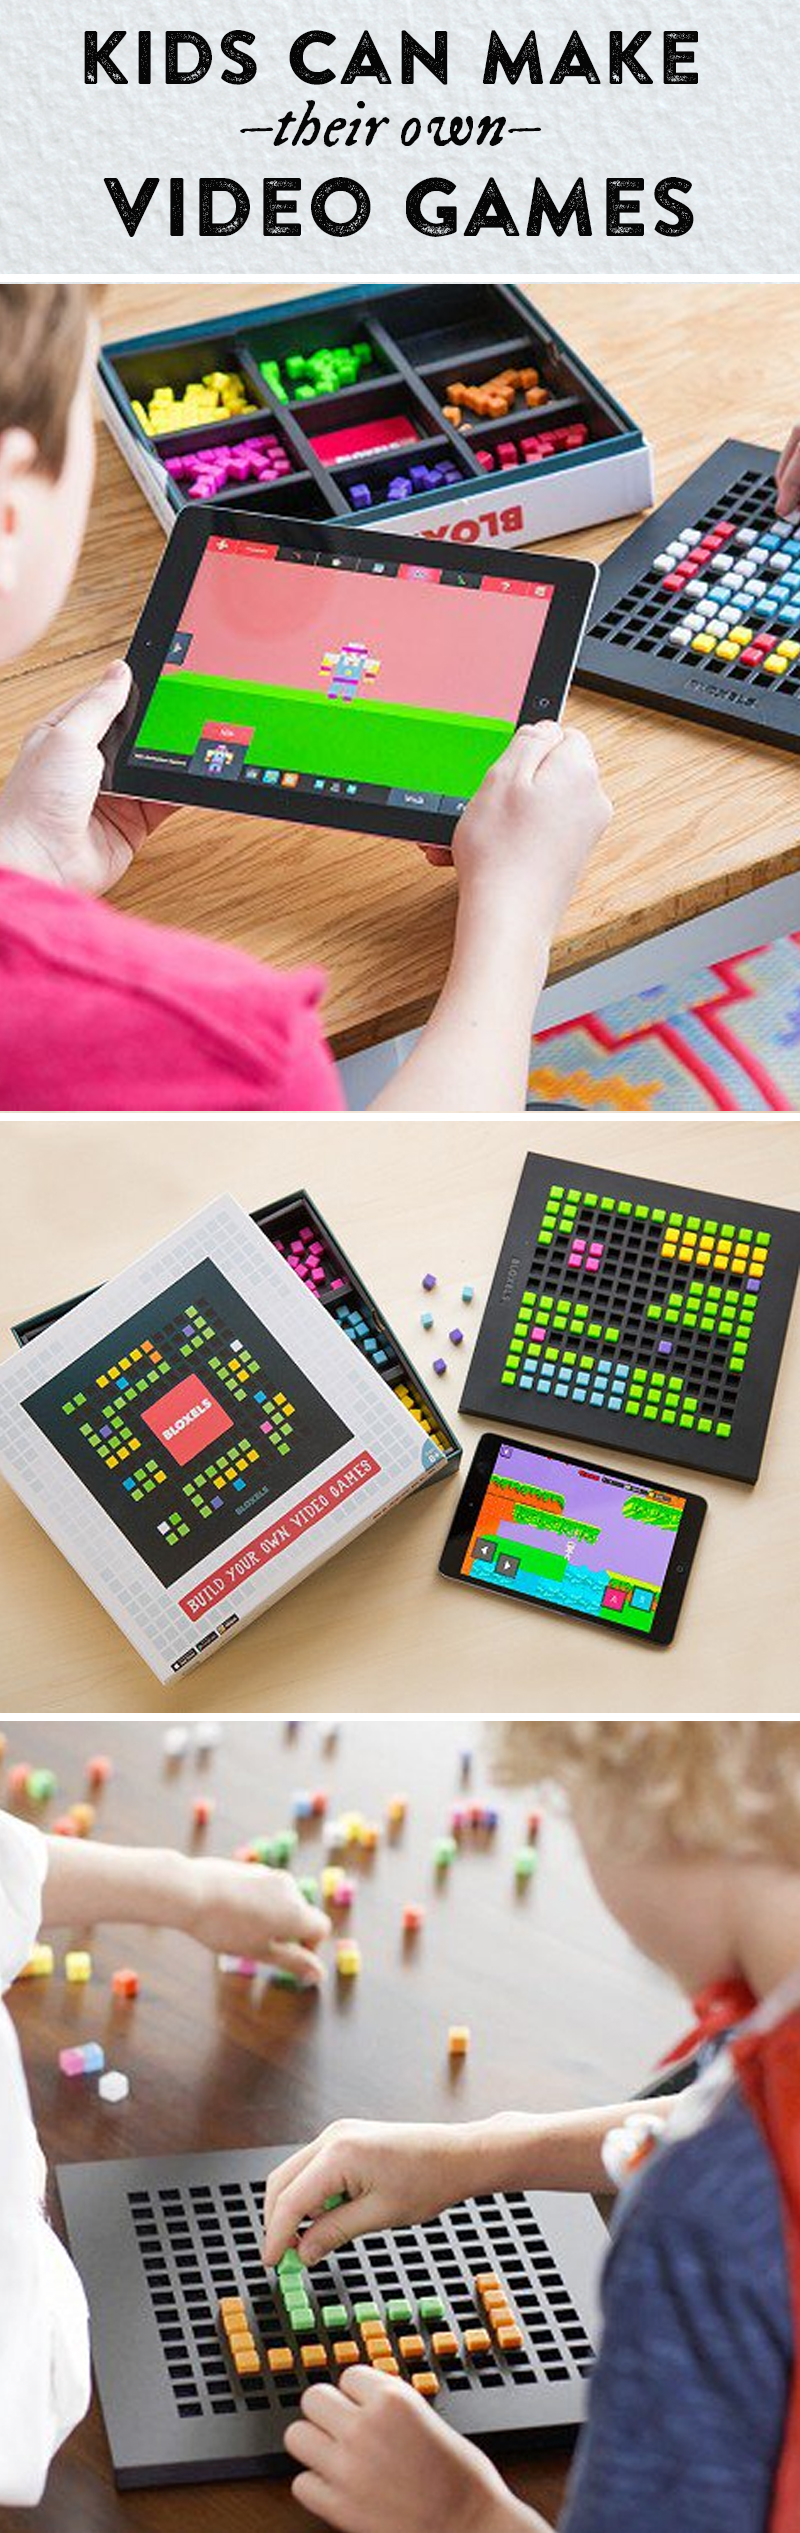 Kids design their own video gameswith physical blocks on